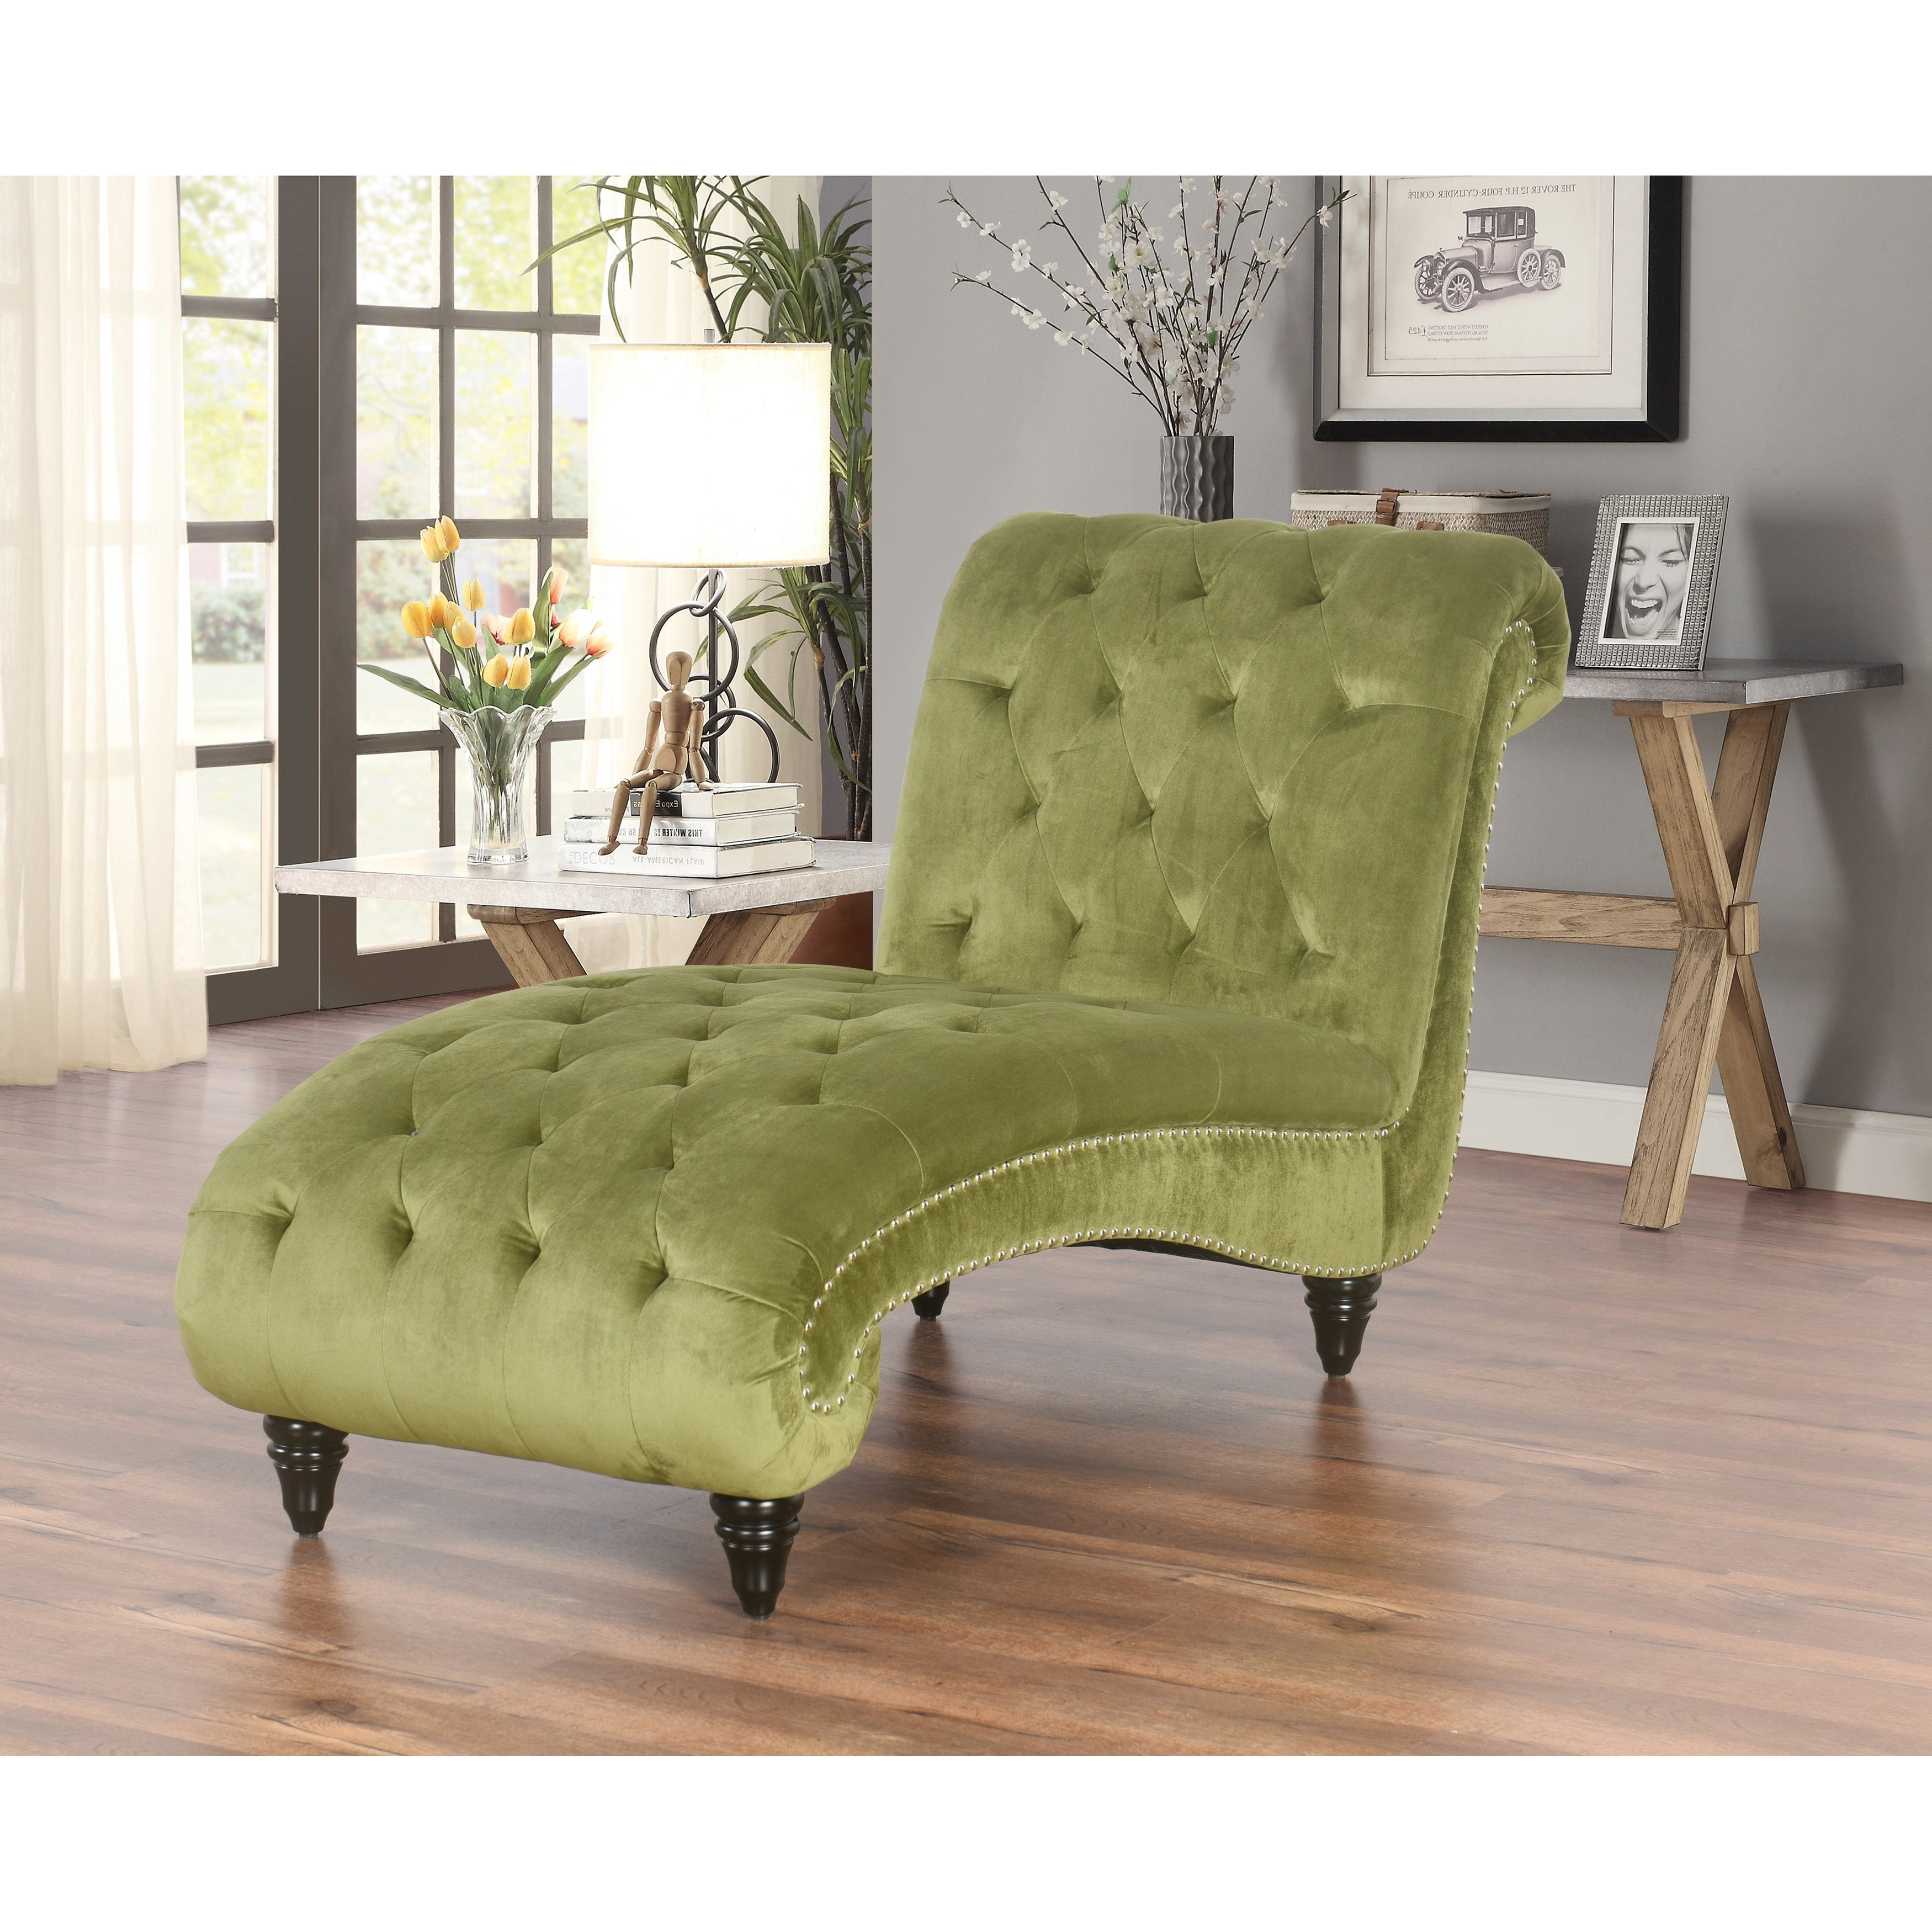 Details About Chaise Lounge Chair Traditional Sofa Bedroom Living Indoor Tufted Olive Velvet